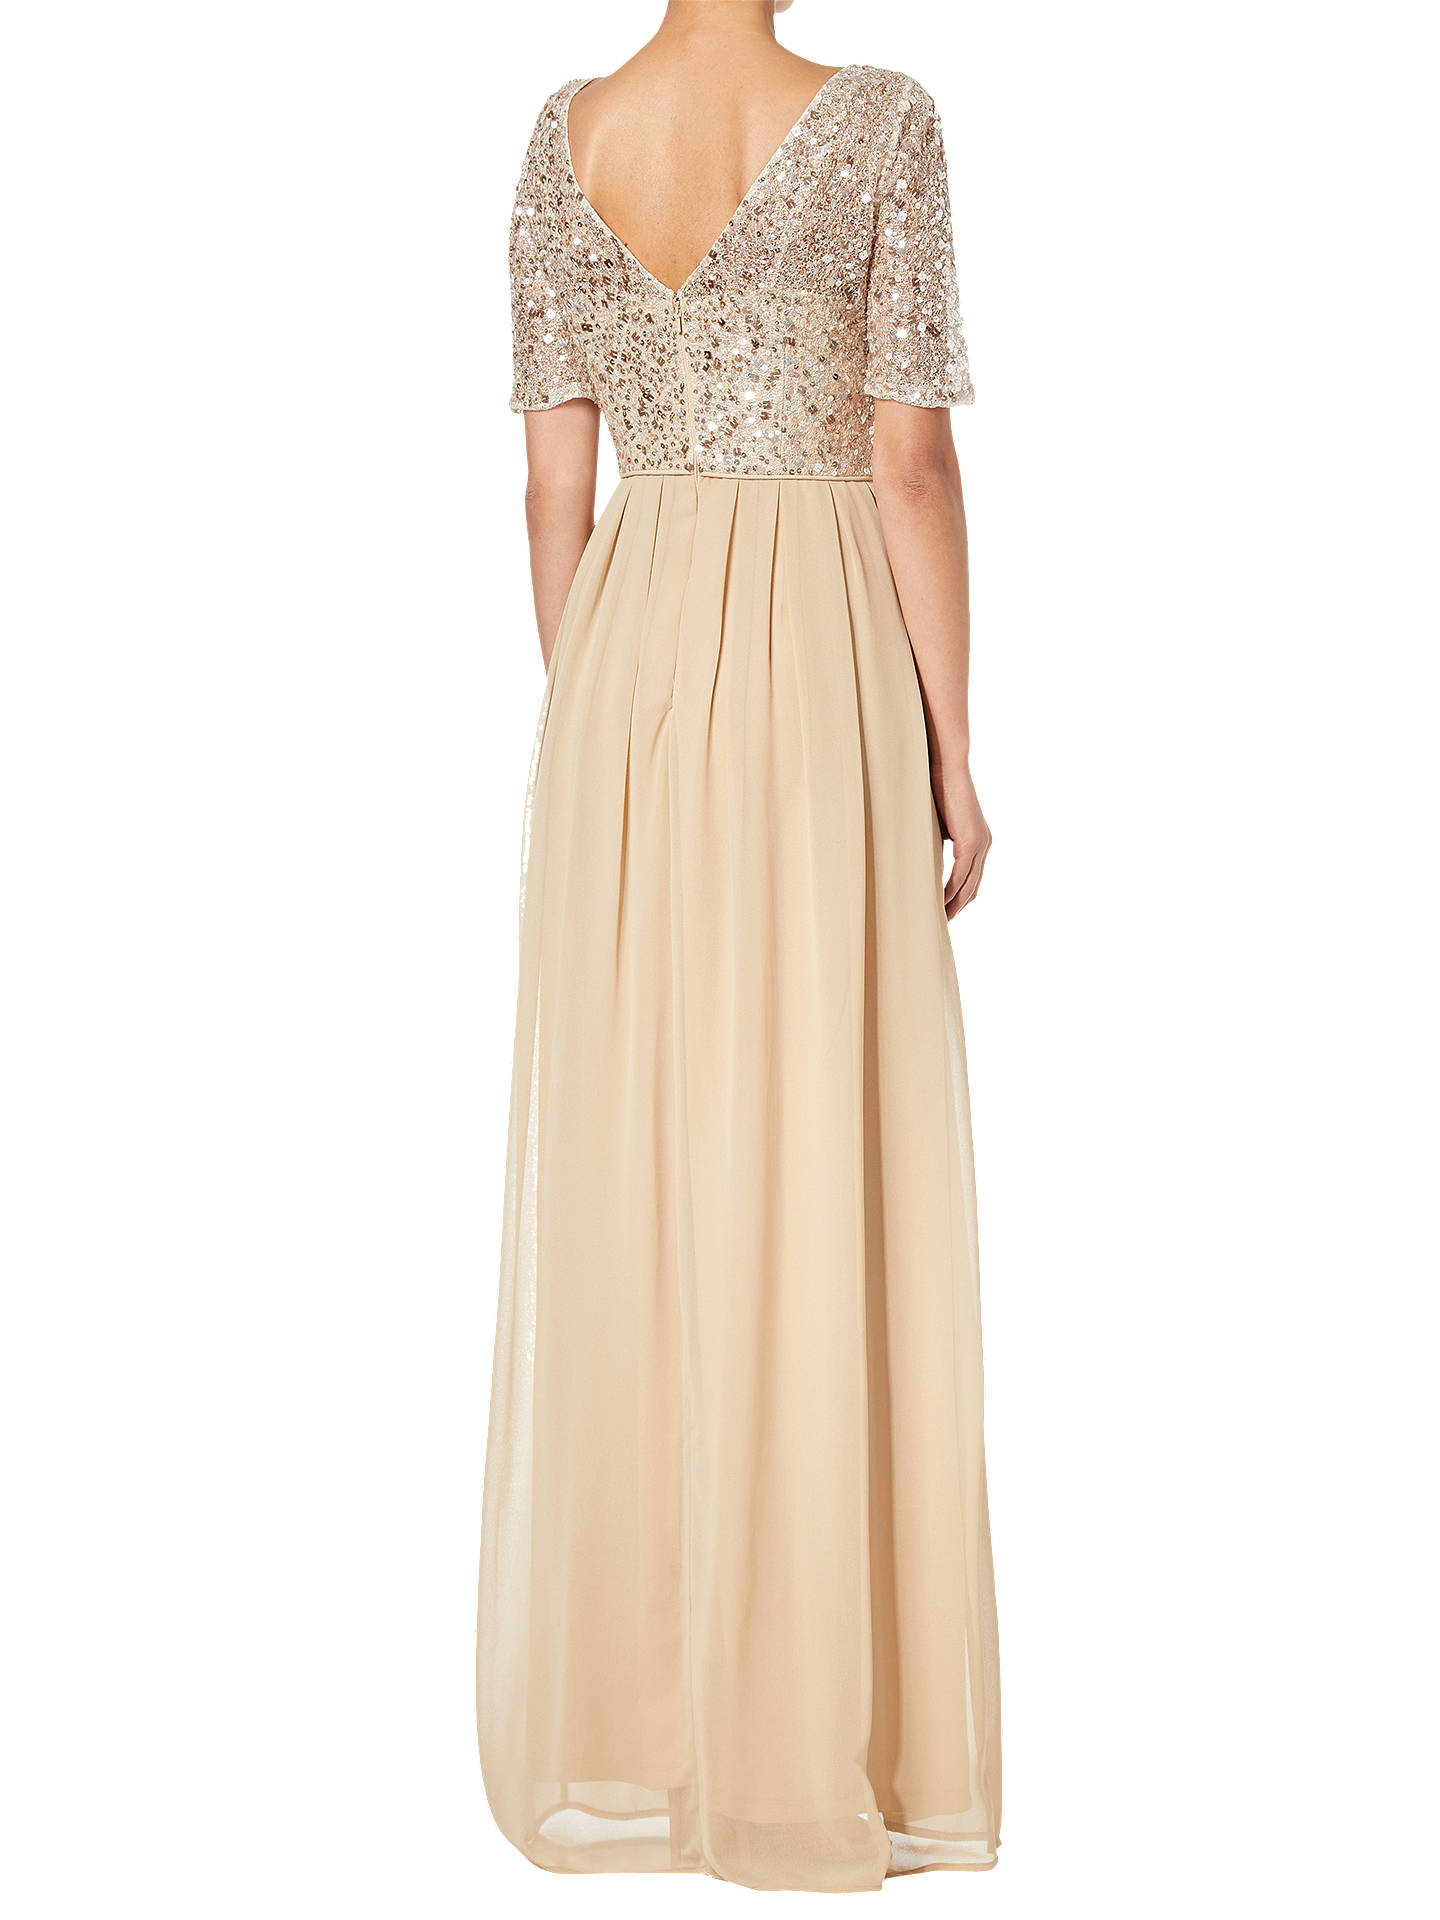 Buy Adrianna Papell Beaded Elbow Sleeve Gown, Nude Pink, 8 Online at johnlewis.com